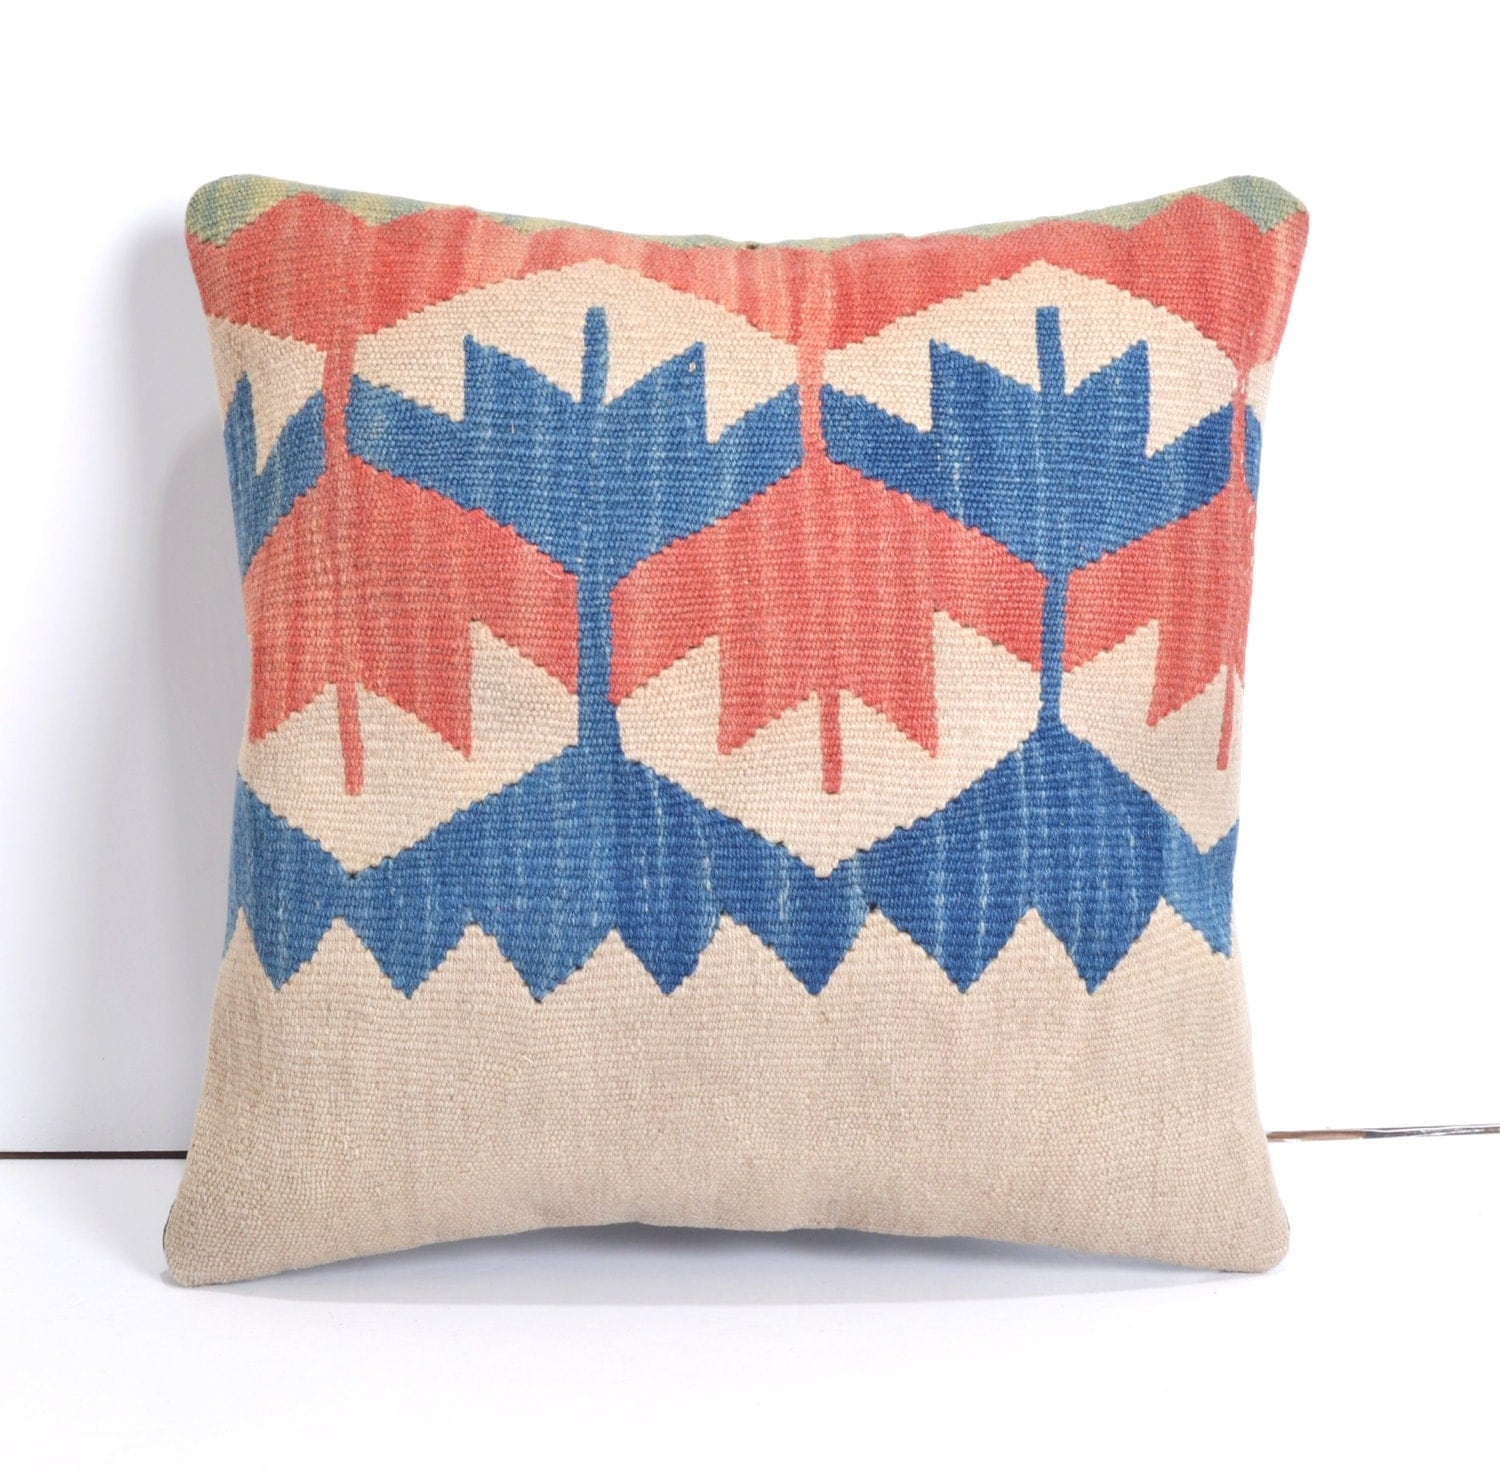 Throw Pillows King Size Bed : 16x16 blue throw pillows Kilim Pillow Throw by arastabazaar